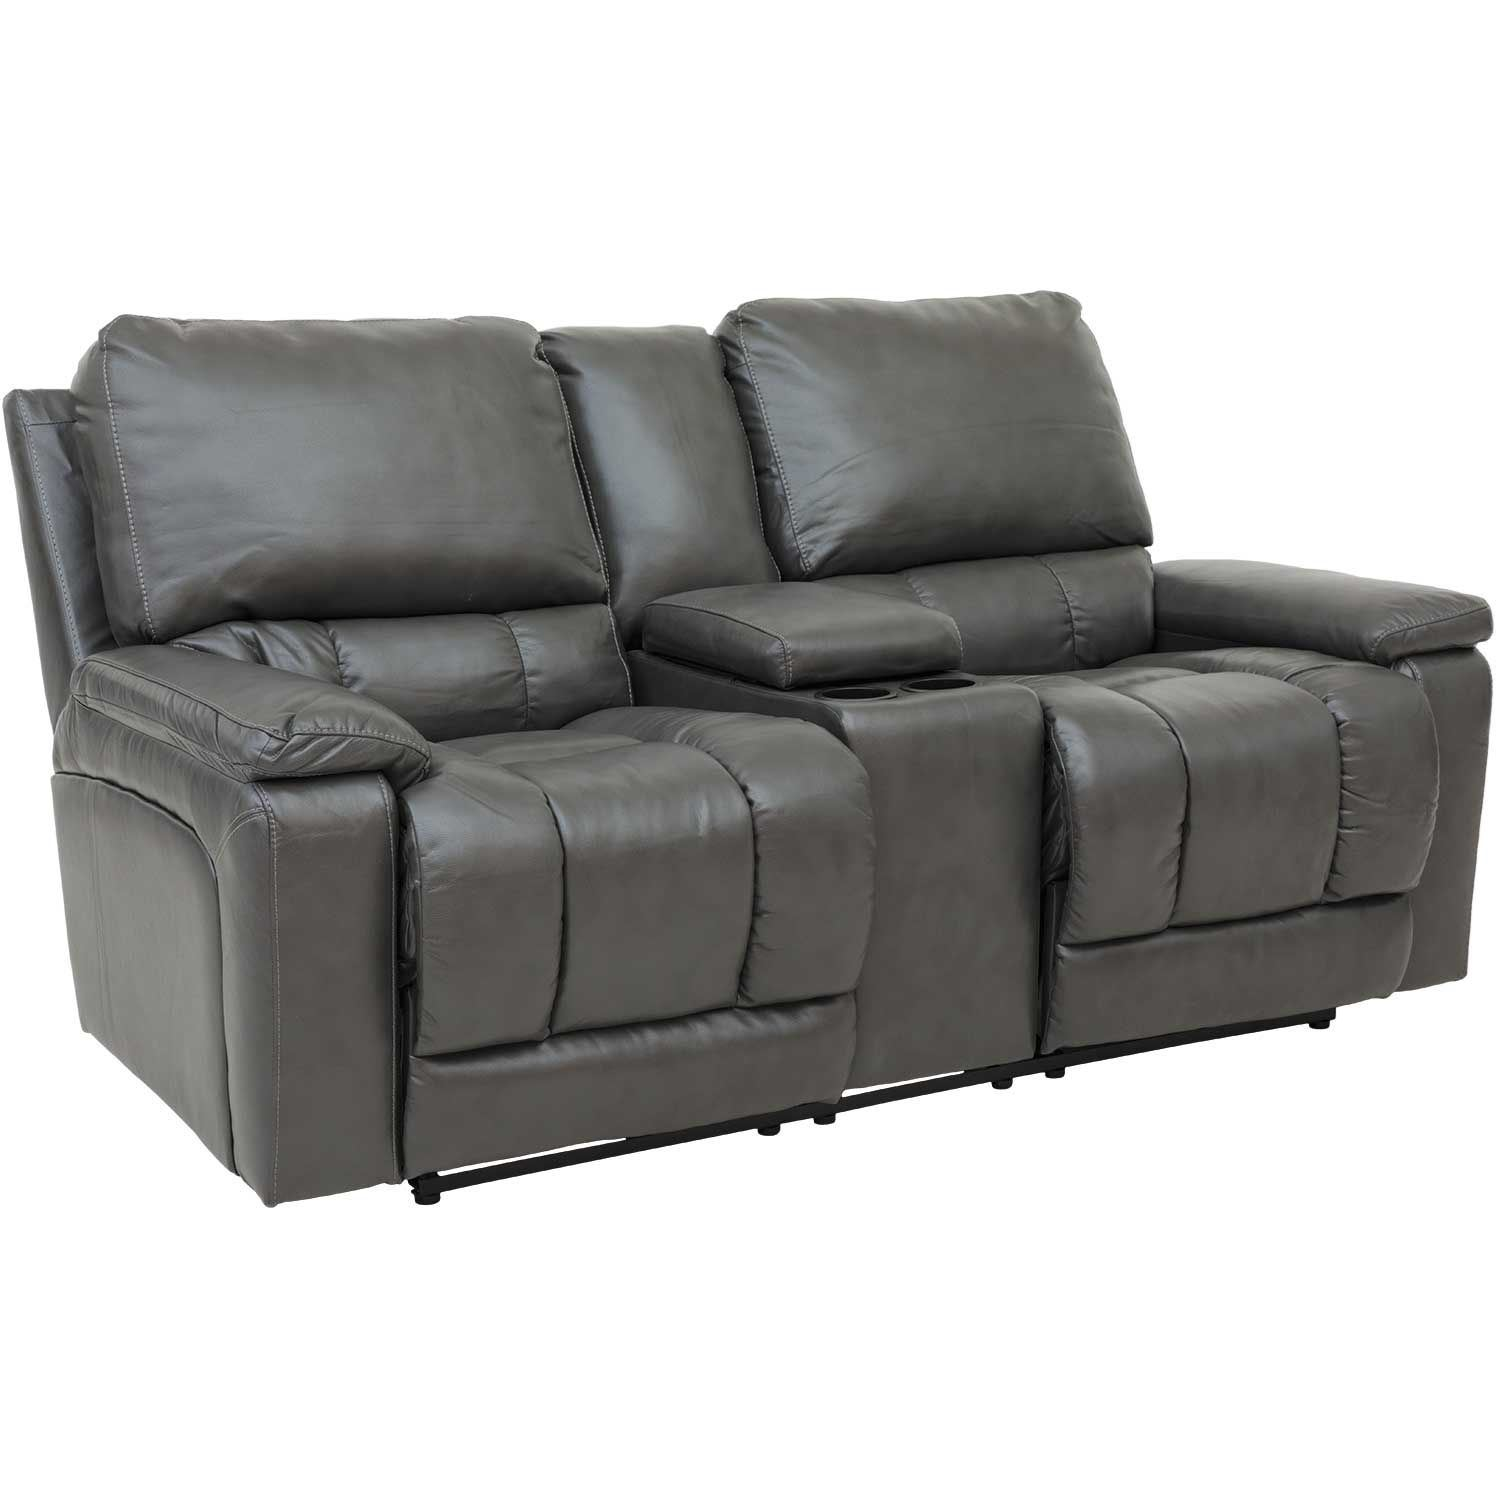 Afw Charcoal Recline Console Loveseat Z3 400rl Leather Loveseats